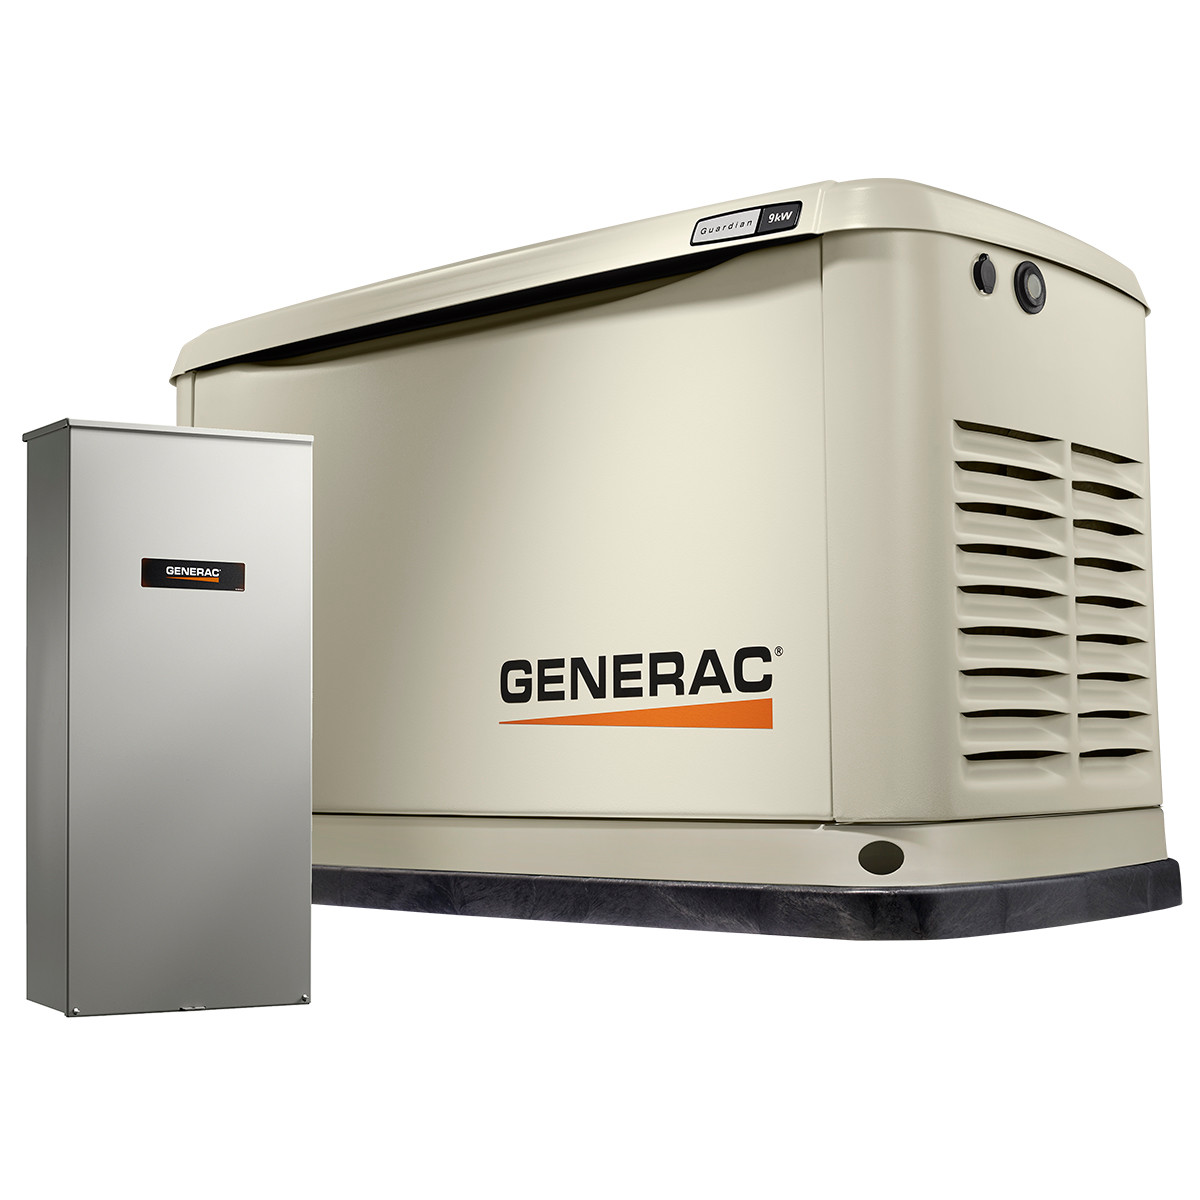 small resolution of generac 7030 9kw generator 100a 16 circuit transfer switch 200 amp panel wiring diagram wiring diagram for generac 22kw free download